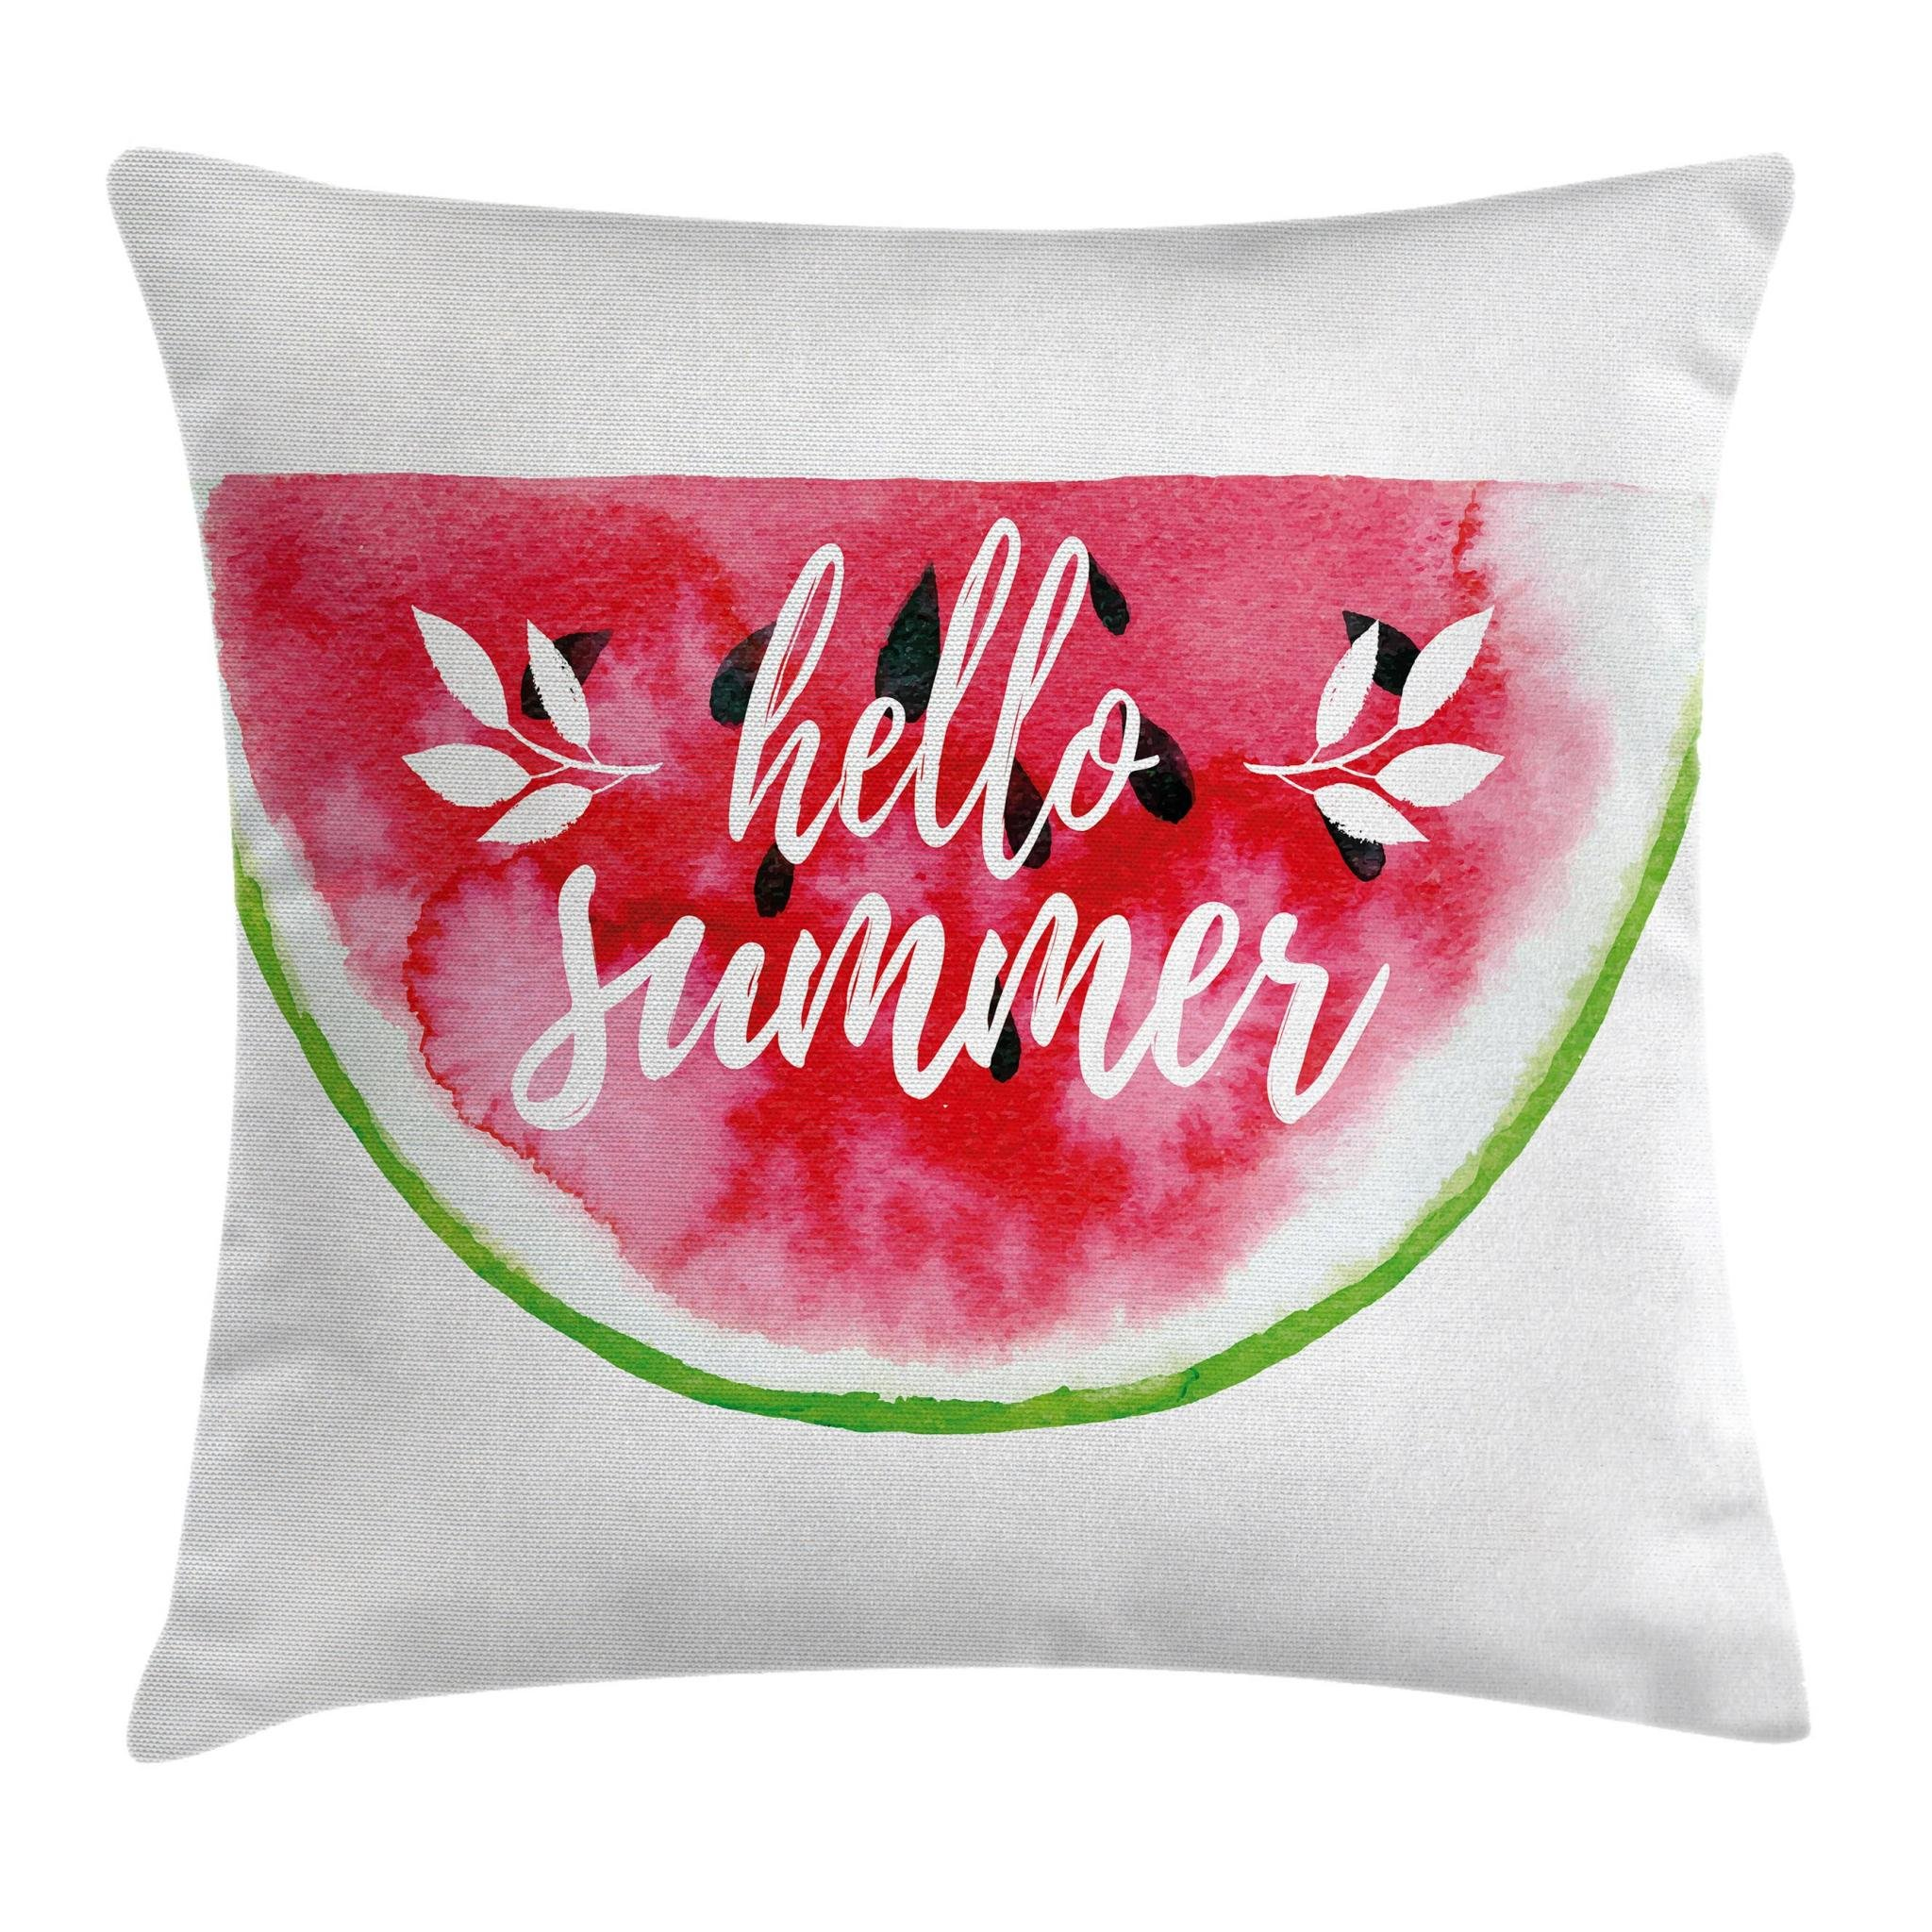 Ambesonne Lifestyle Decor Throw Pillow Cushion Cover, Watercolor Watermelon Figure with Hello Summer Motivation Quote Paint Print, Decorative Square Accent Pillow Case, 18 X 18 Inches, Red Green